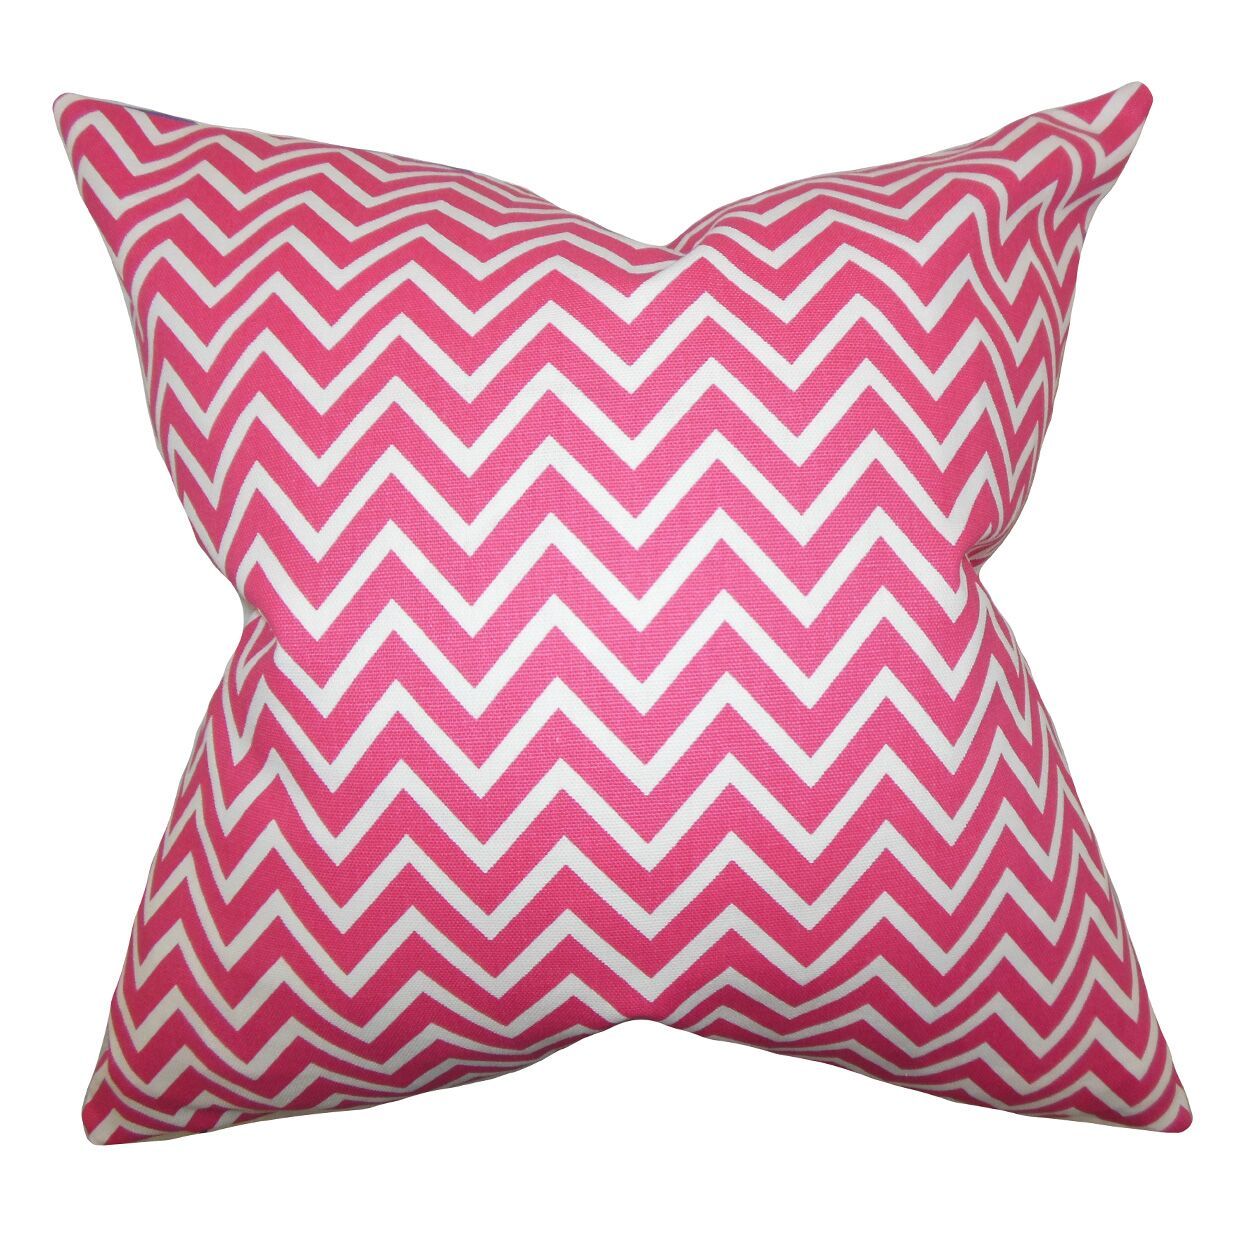 Sula Zigzag Bedding Sham Size: King, Color: Candy Pink